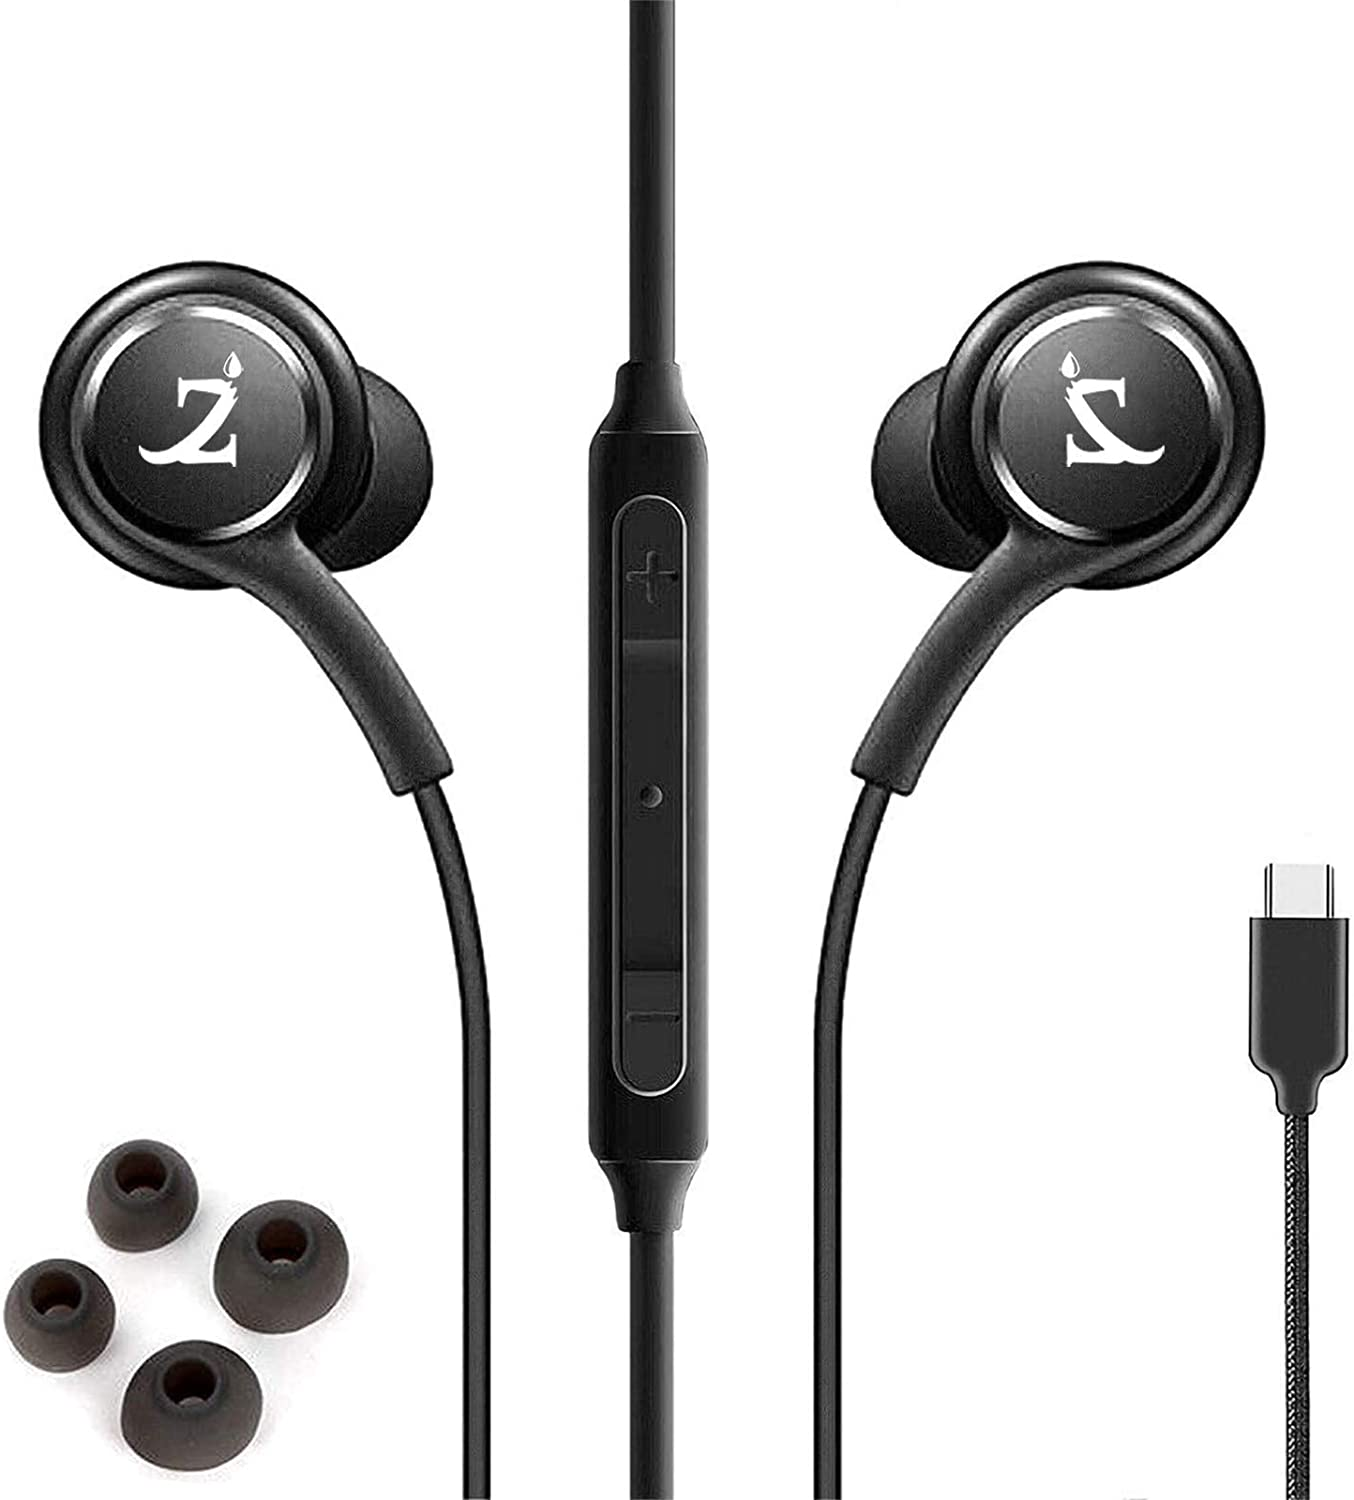 ZAMZAM PRO Stereo Headphones Works for Apple iPhone 8 with Hands-Free Built-in Microphone Buttons + Crisp Digital Titanium Clear Audio! (3.5mm, 1/8 inch)